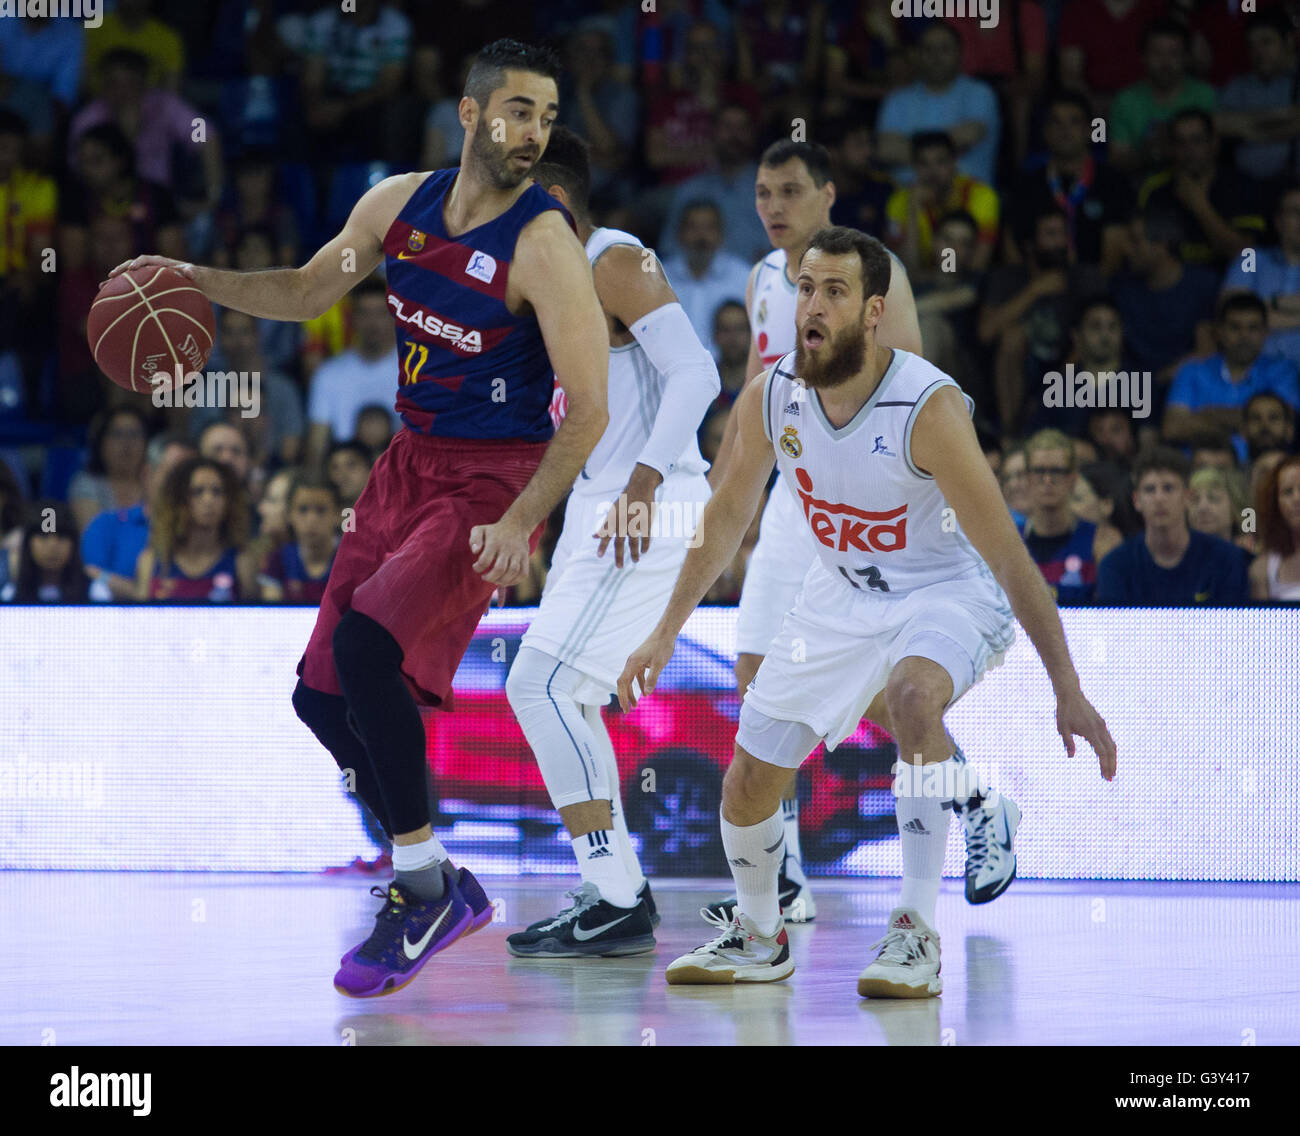 Barcelona, Spain. 15th June, 2016. FC Barcelona Lassa earned a victory in the opening match of the Endesa League - Stock Image